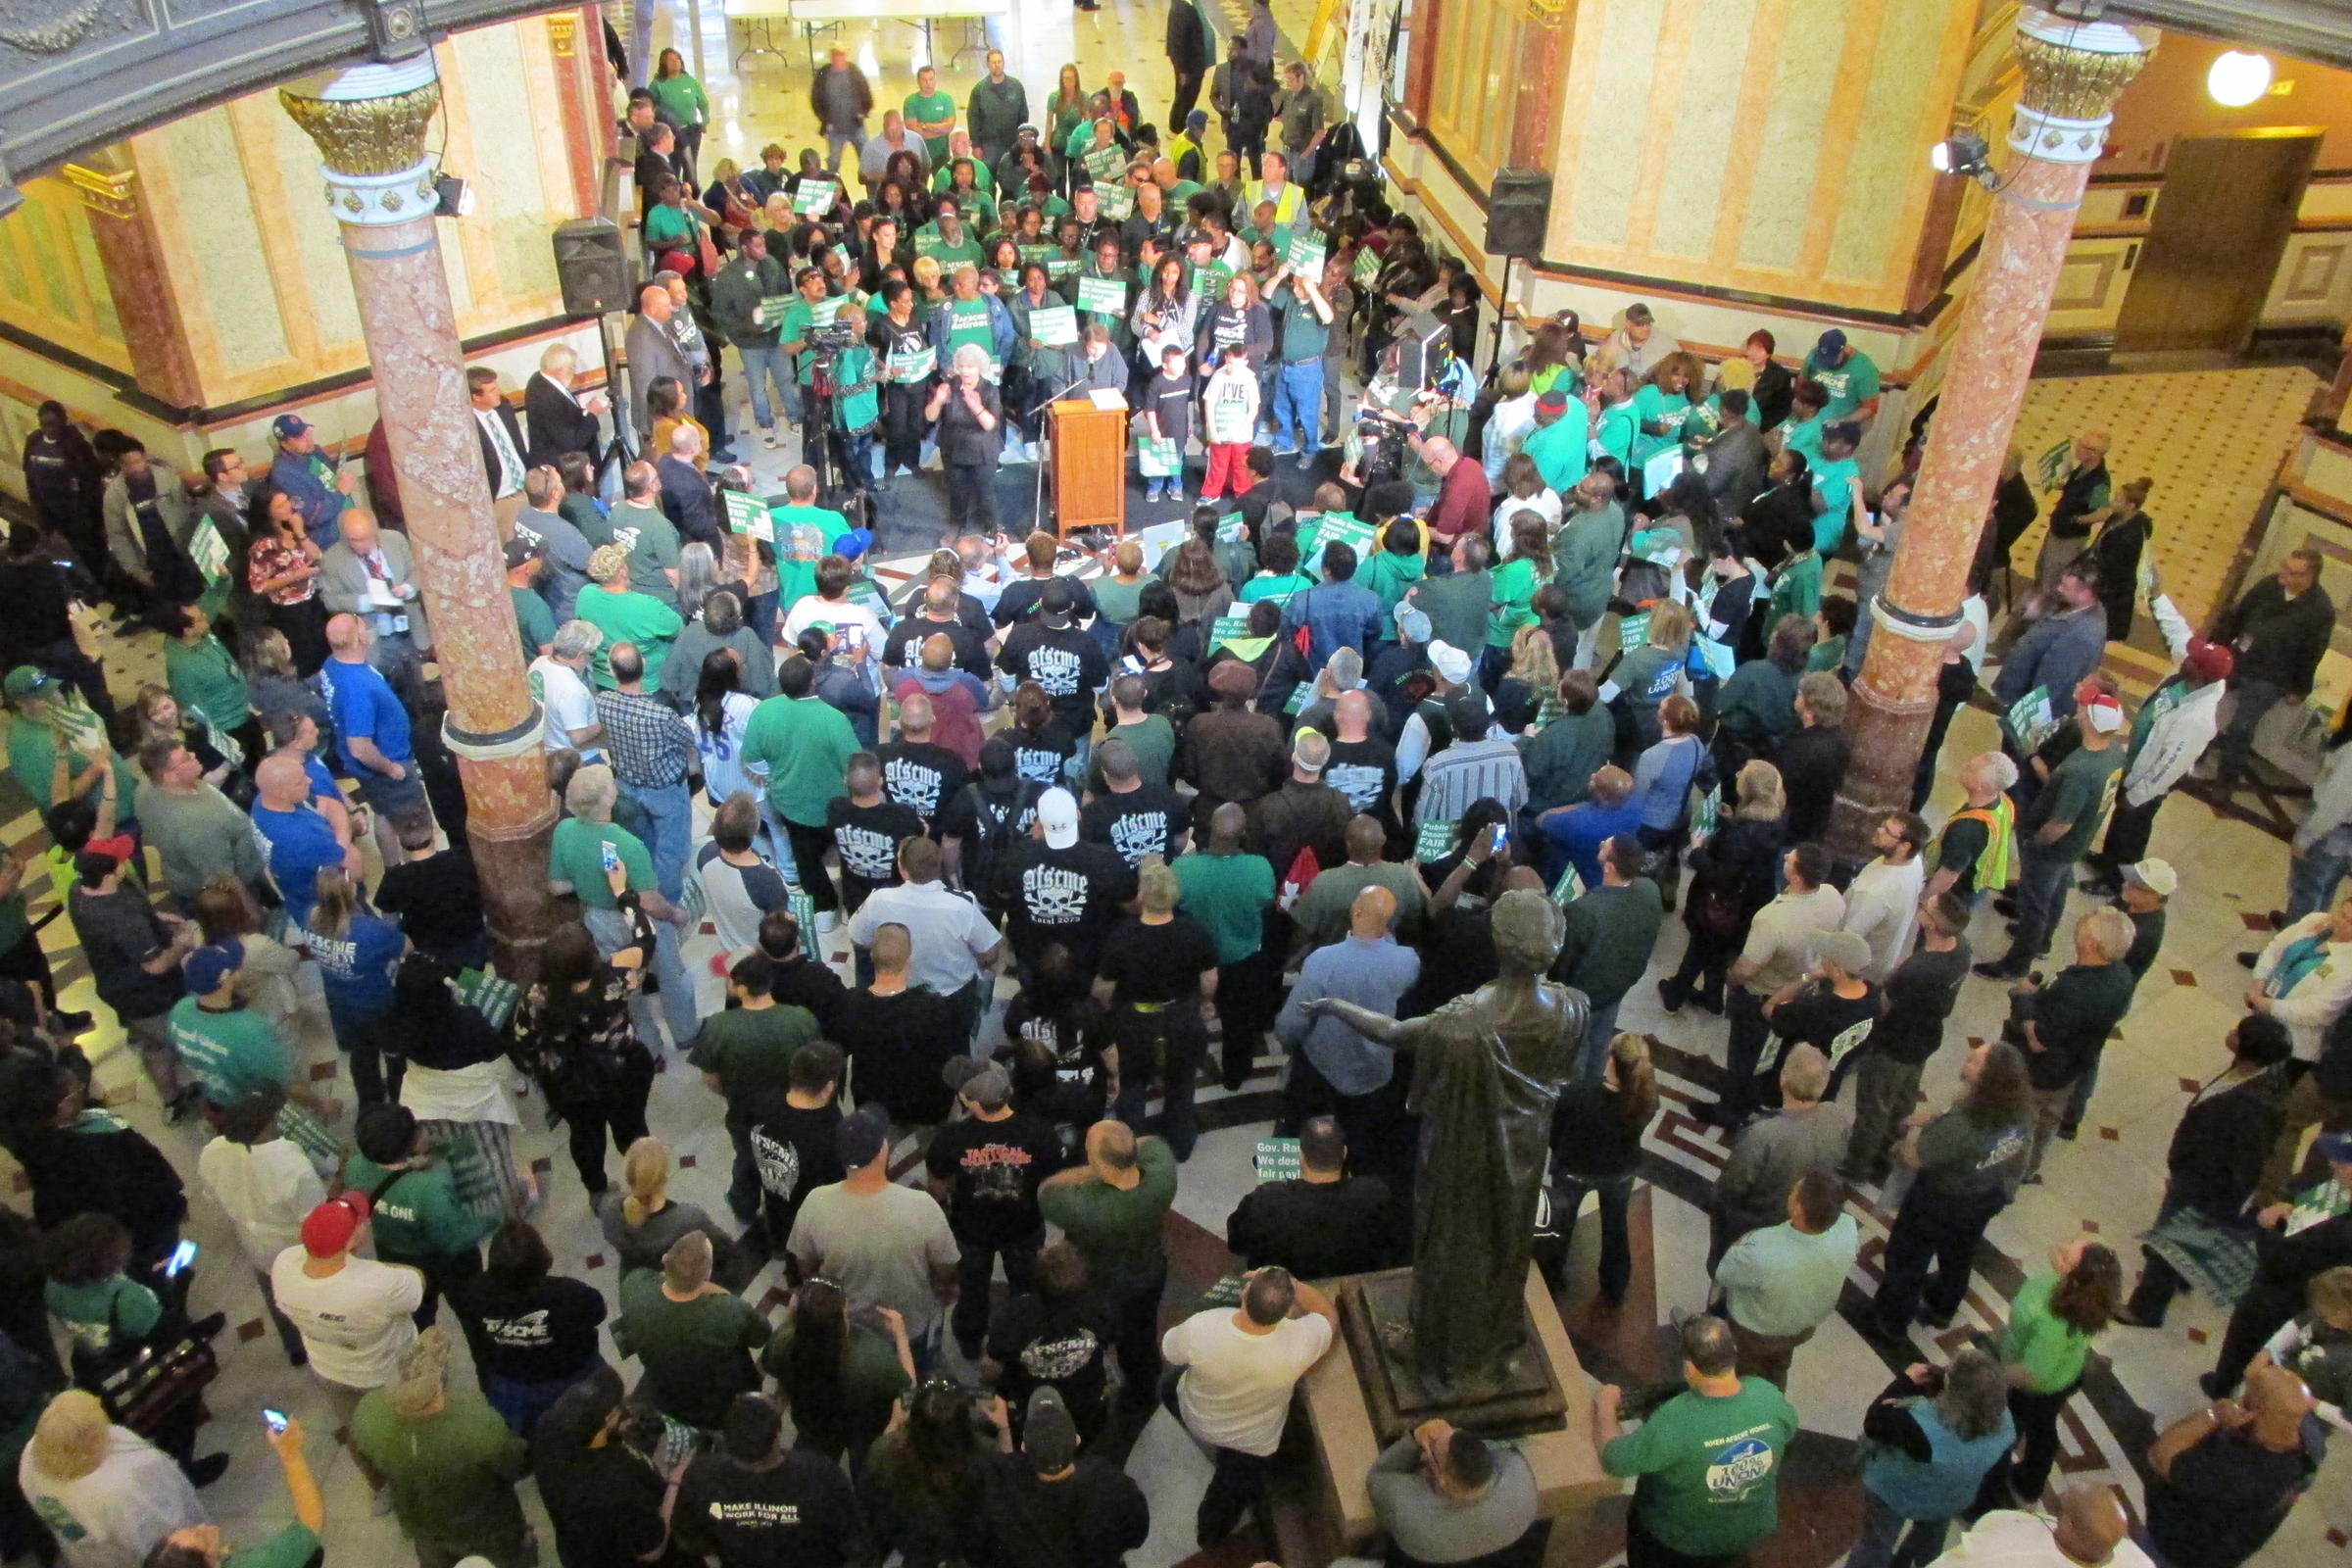 State Workers From Labor Union AFSCME Rally At The Illinois State Capitol  In April 2018.